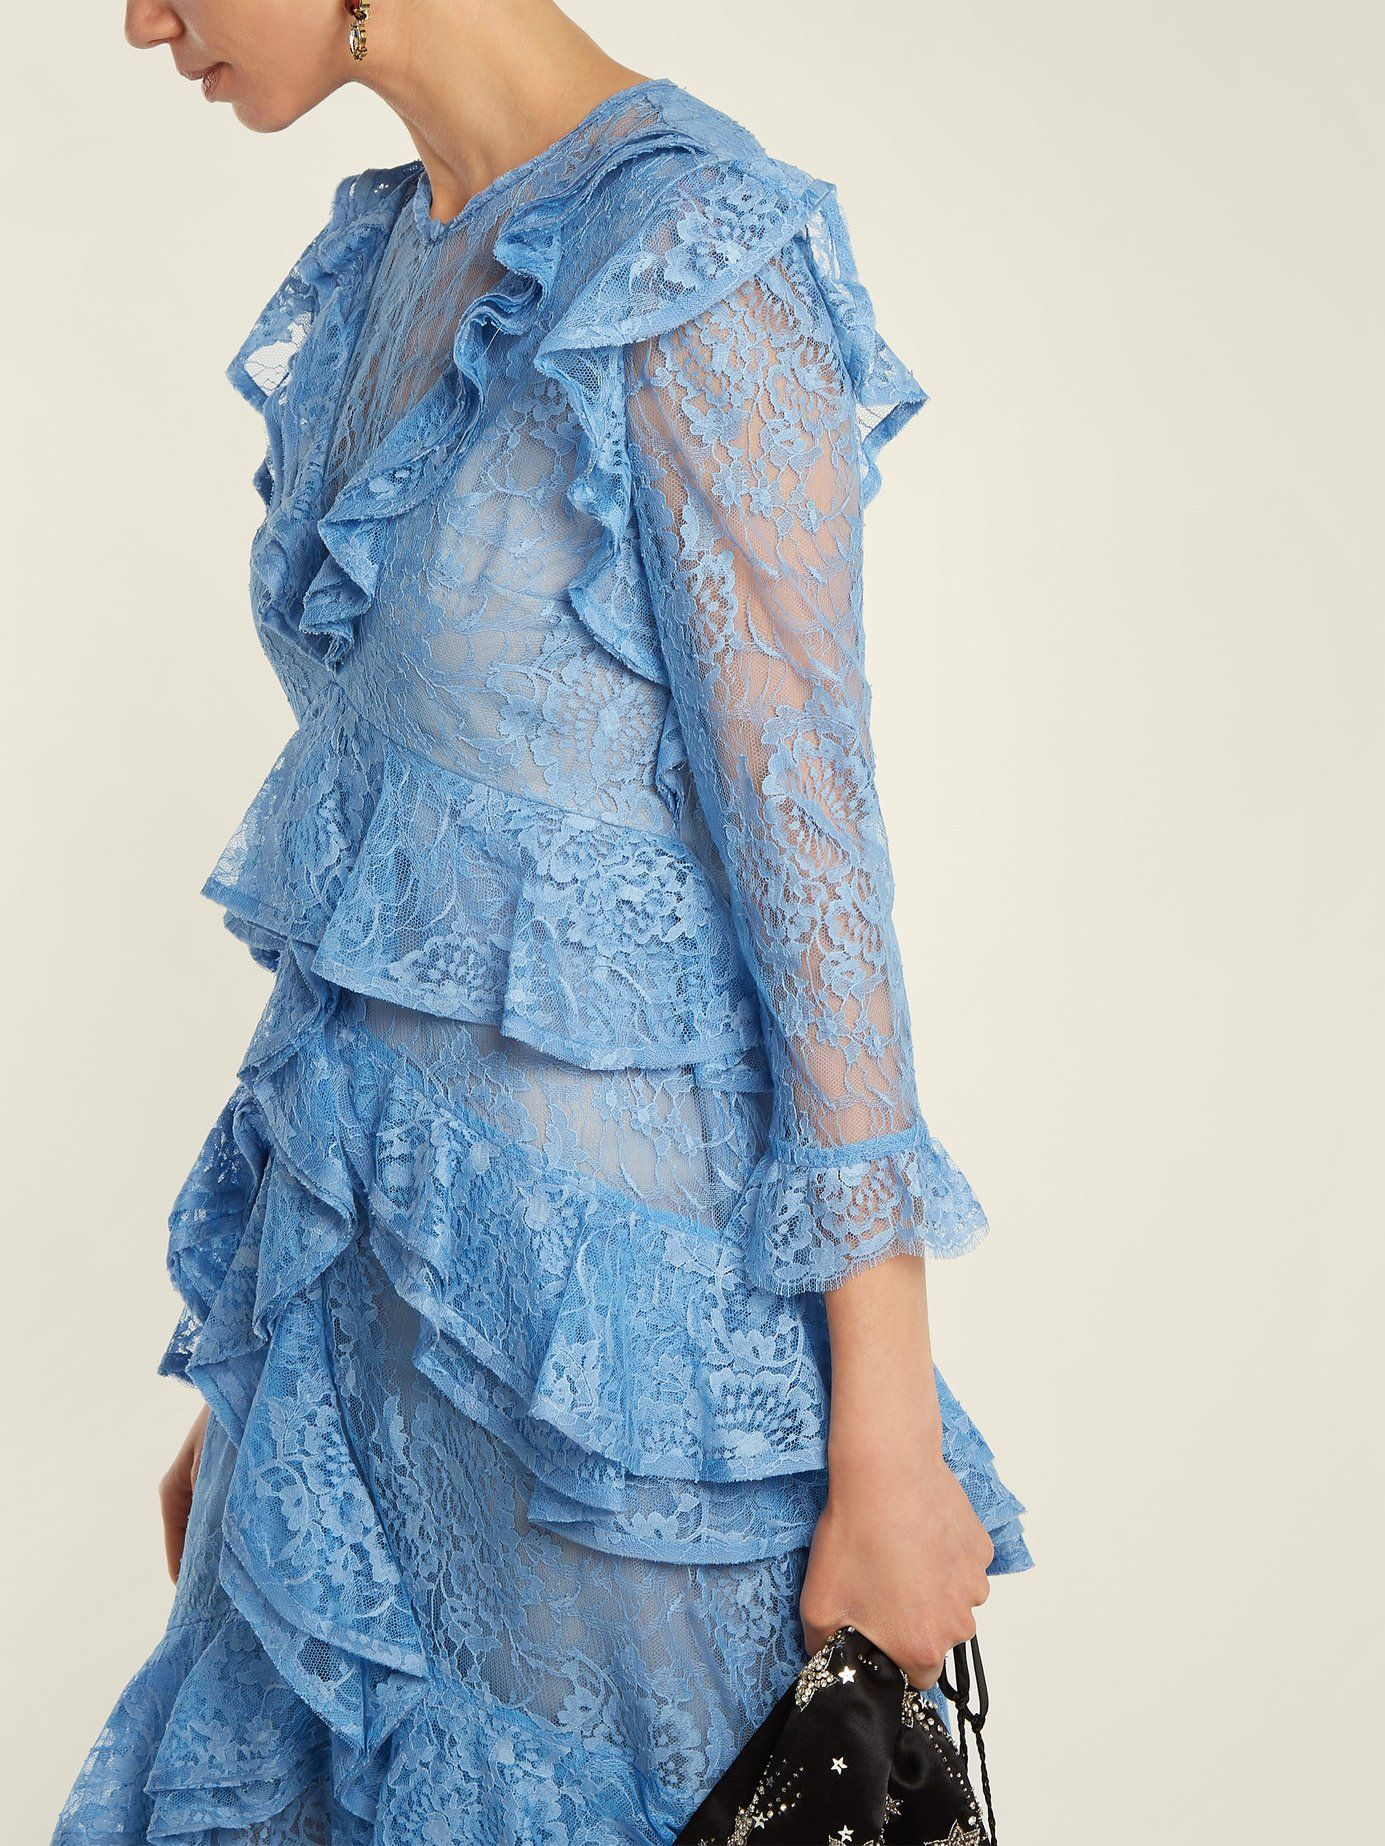 Koral ruffle-trimmed lace dress Erdem Discount Wholesale Price 8lgcEncE